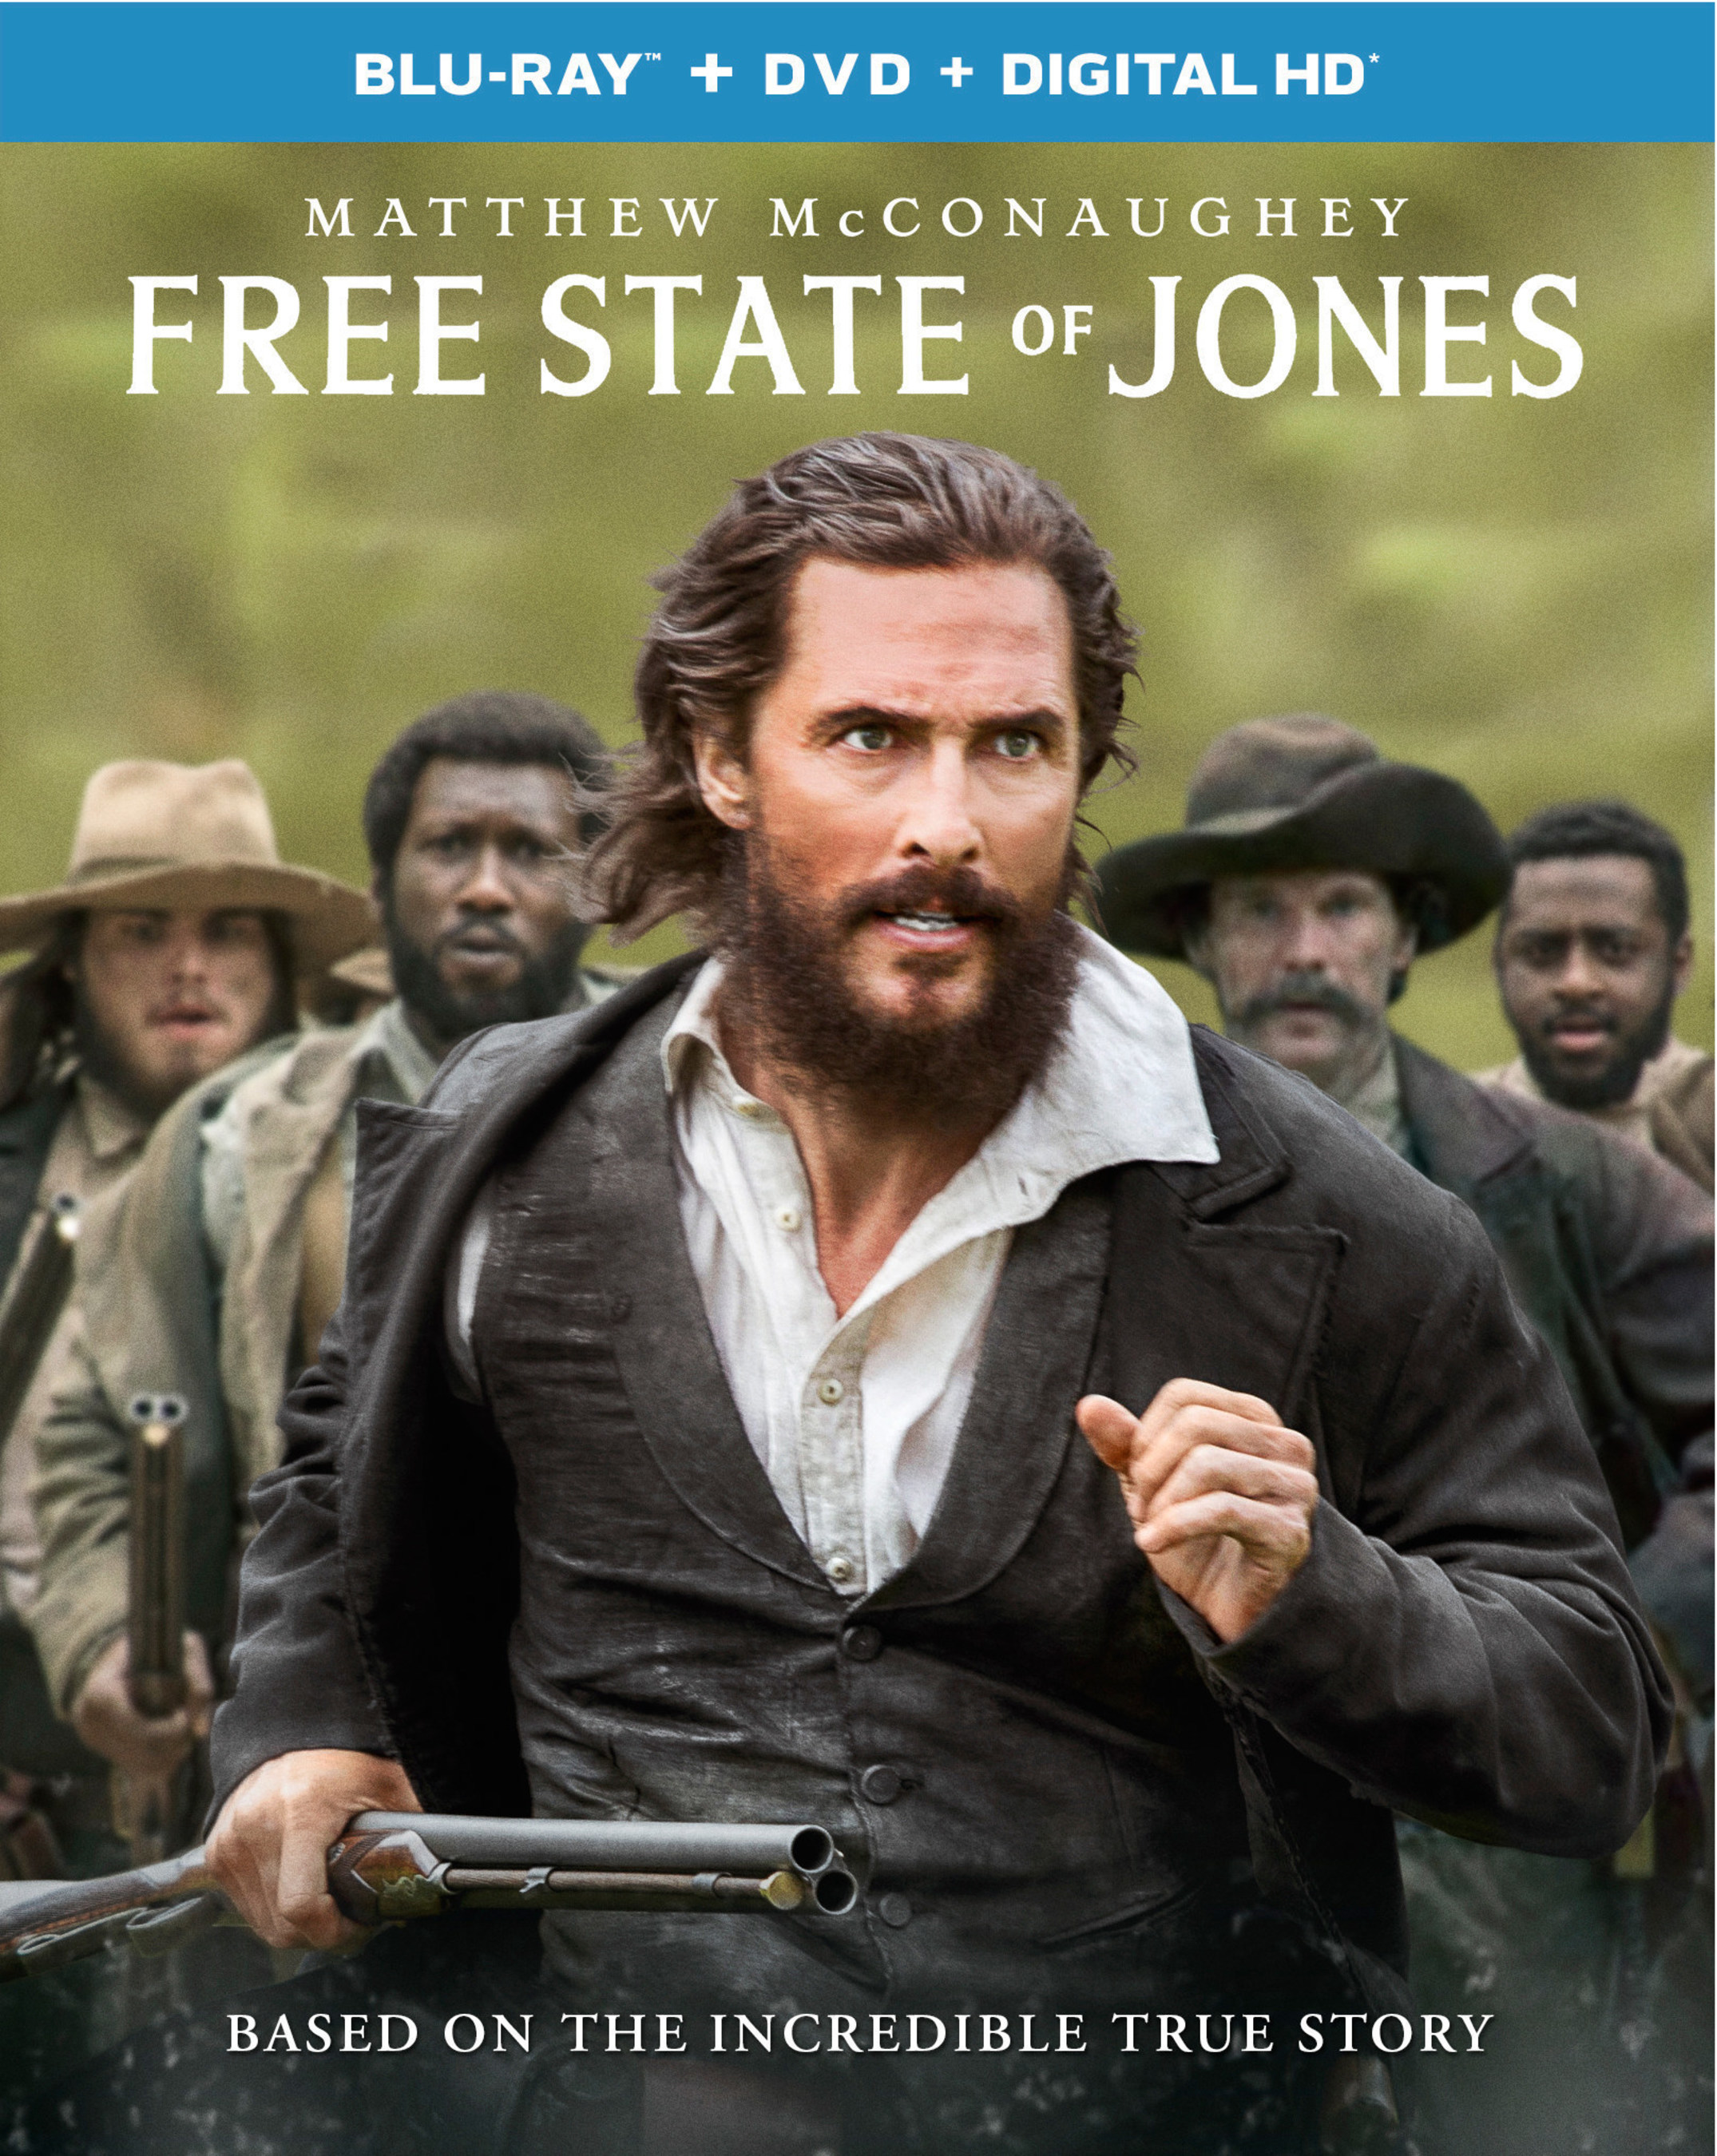 From Universal Pictures Home Entertainment: Free State of Jones